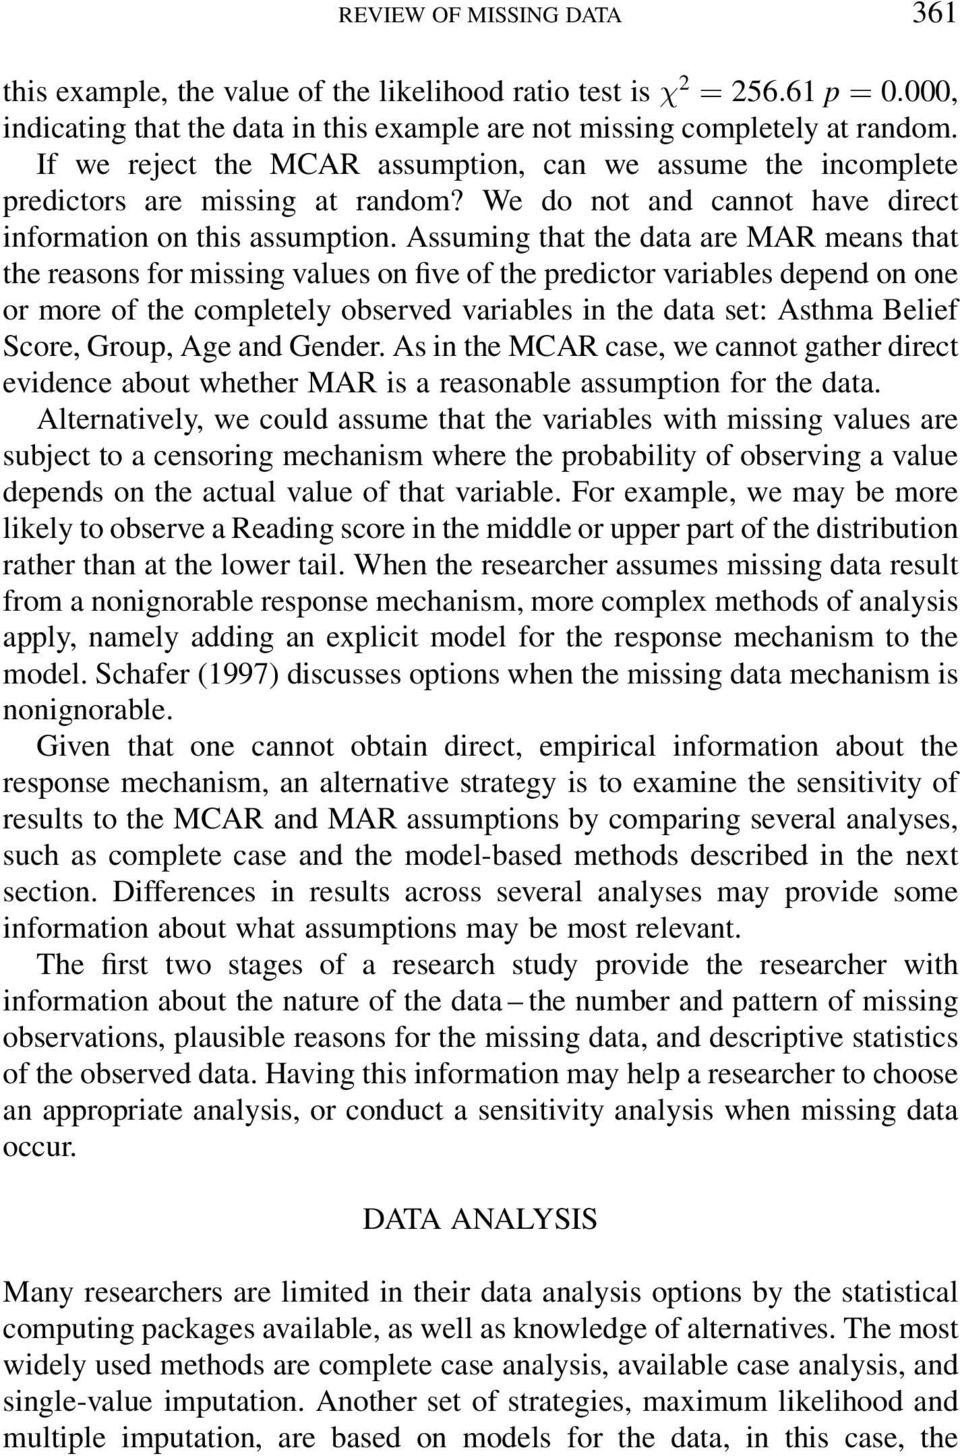 Assuming that the data are MAR means that the reasons for missing values on ve of the predictor variables depend on one or more of the completely observed variables in the data set: Asthma Belief